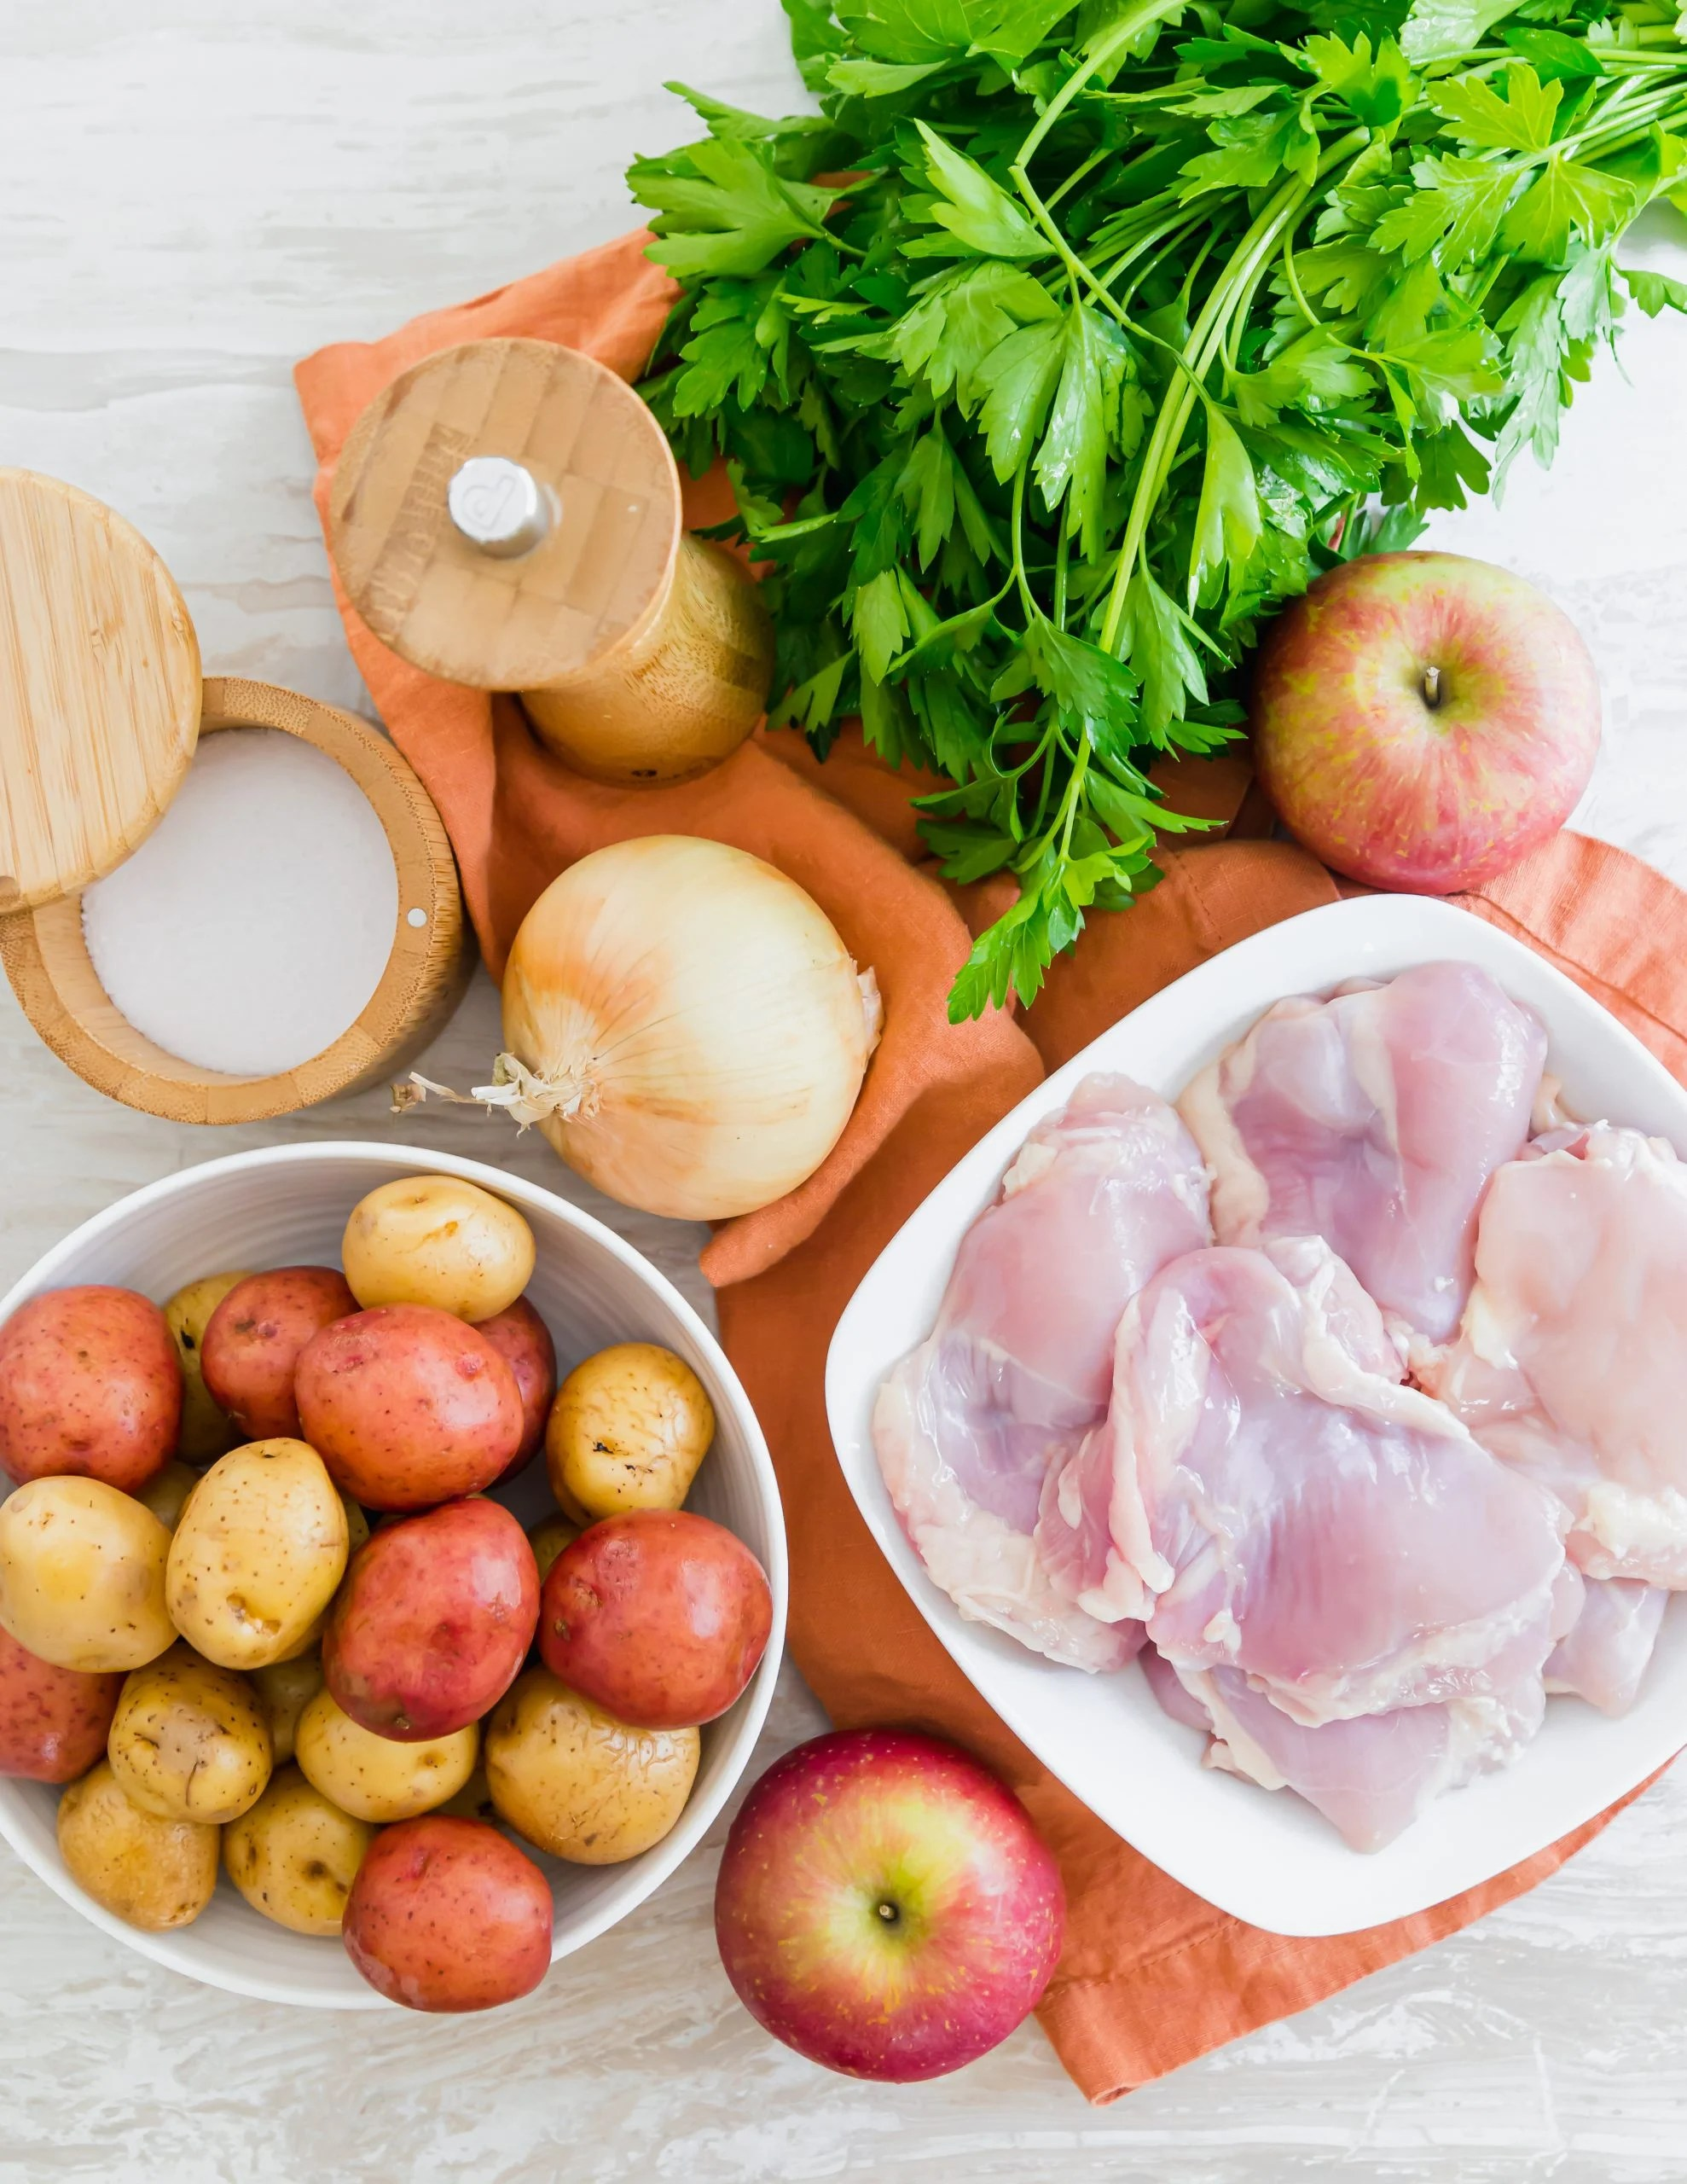 picture of chicken thighs, onion, salt, pepper, parsley, potatoes, and apples on a table